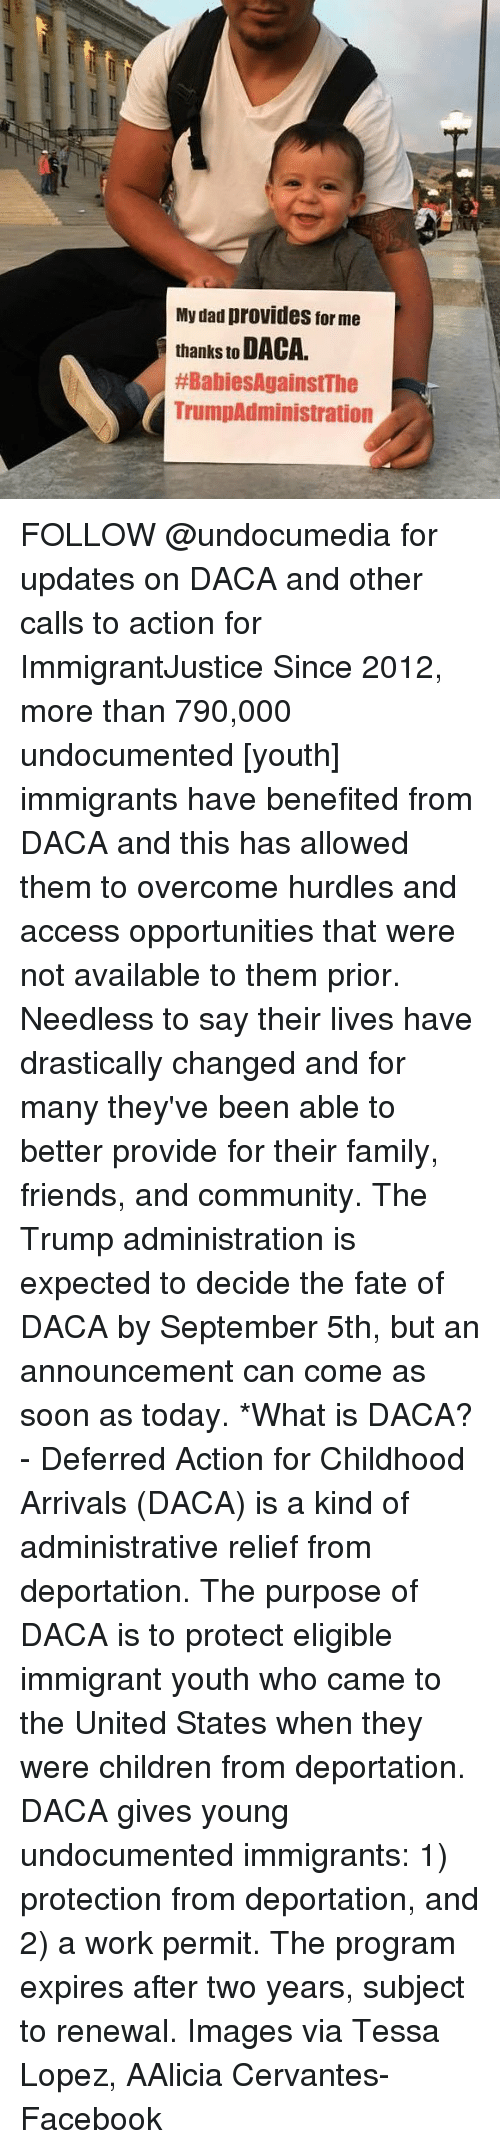 Children, Community, and Dad: My dad provides for me  thanks to DACA.  #BabiesAgainstThe  TrumpAdministration FOLLOW @undocumedia for updates on DACA and other calls to action for ImmigrantJustice Since 2012, more than 790,000 undocumented [youth] immigrants have benefited from DACA and this has allowed them to overcome hurdles and access opportunities that were not available to them prior. Needless to say their lives have drastically changed and for many they've been able to better provide for their family, friends, and community. The Trump administration is expected to decide the fate of DACA by September 5th, but an announcement can come as soon as today. *What is DACA? - Deferred Action for Childhood Arrivals (DACA) is a kind of administrative relief from deportation. The purpose of DACA is to protect eligible immigrant youth who came to the United States when they were children from deportation. DACA gives young undocumented immigrants: 1) protection from deportation, and 2) a work permit. The program expires after two years, subject to renewal. Images via Tessa Lopez, AAlicia Cervantes-Facebook